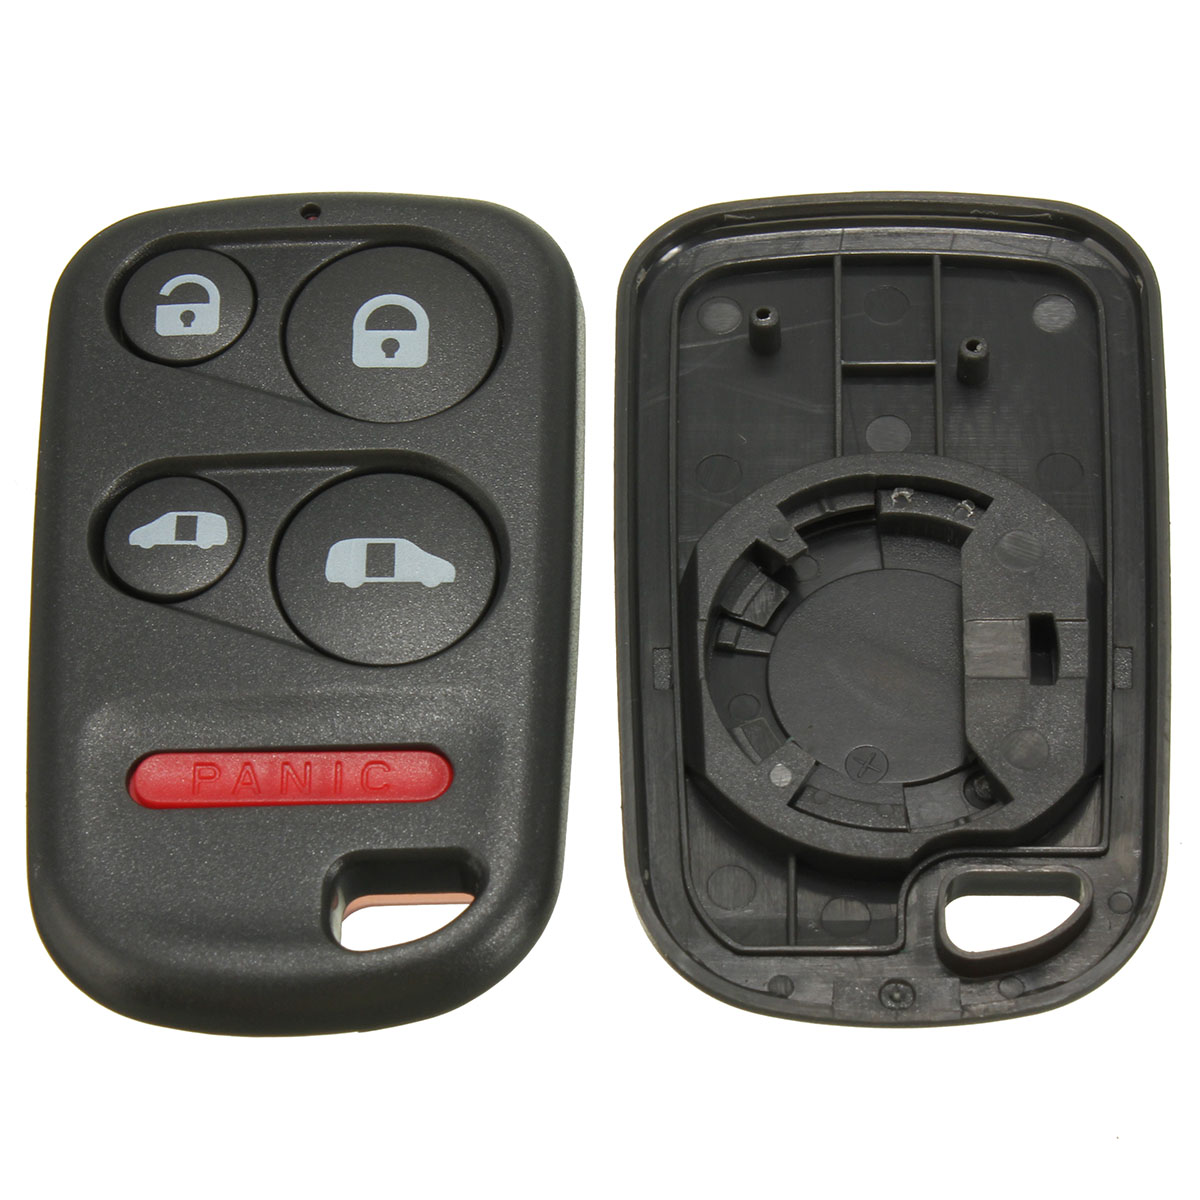 Auto Replacement 4+1 5 Buttons <font><b>Keyless</b></font> Entry <font><b>Remote</b></font> Car Key Shell Fob Case For <font><b>Honda</b></font> FOR Odyssey 2001 2002 2003 2004 image